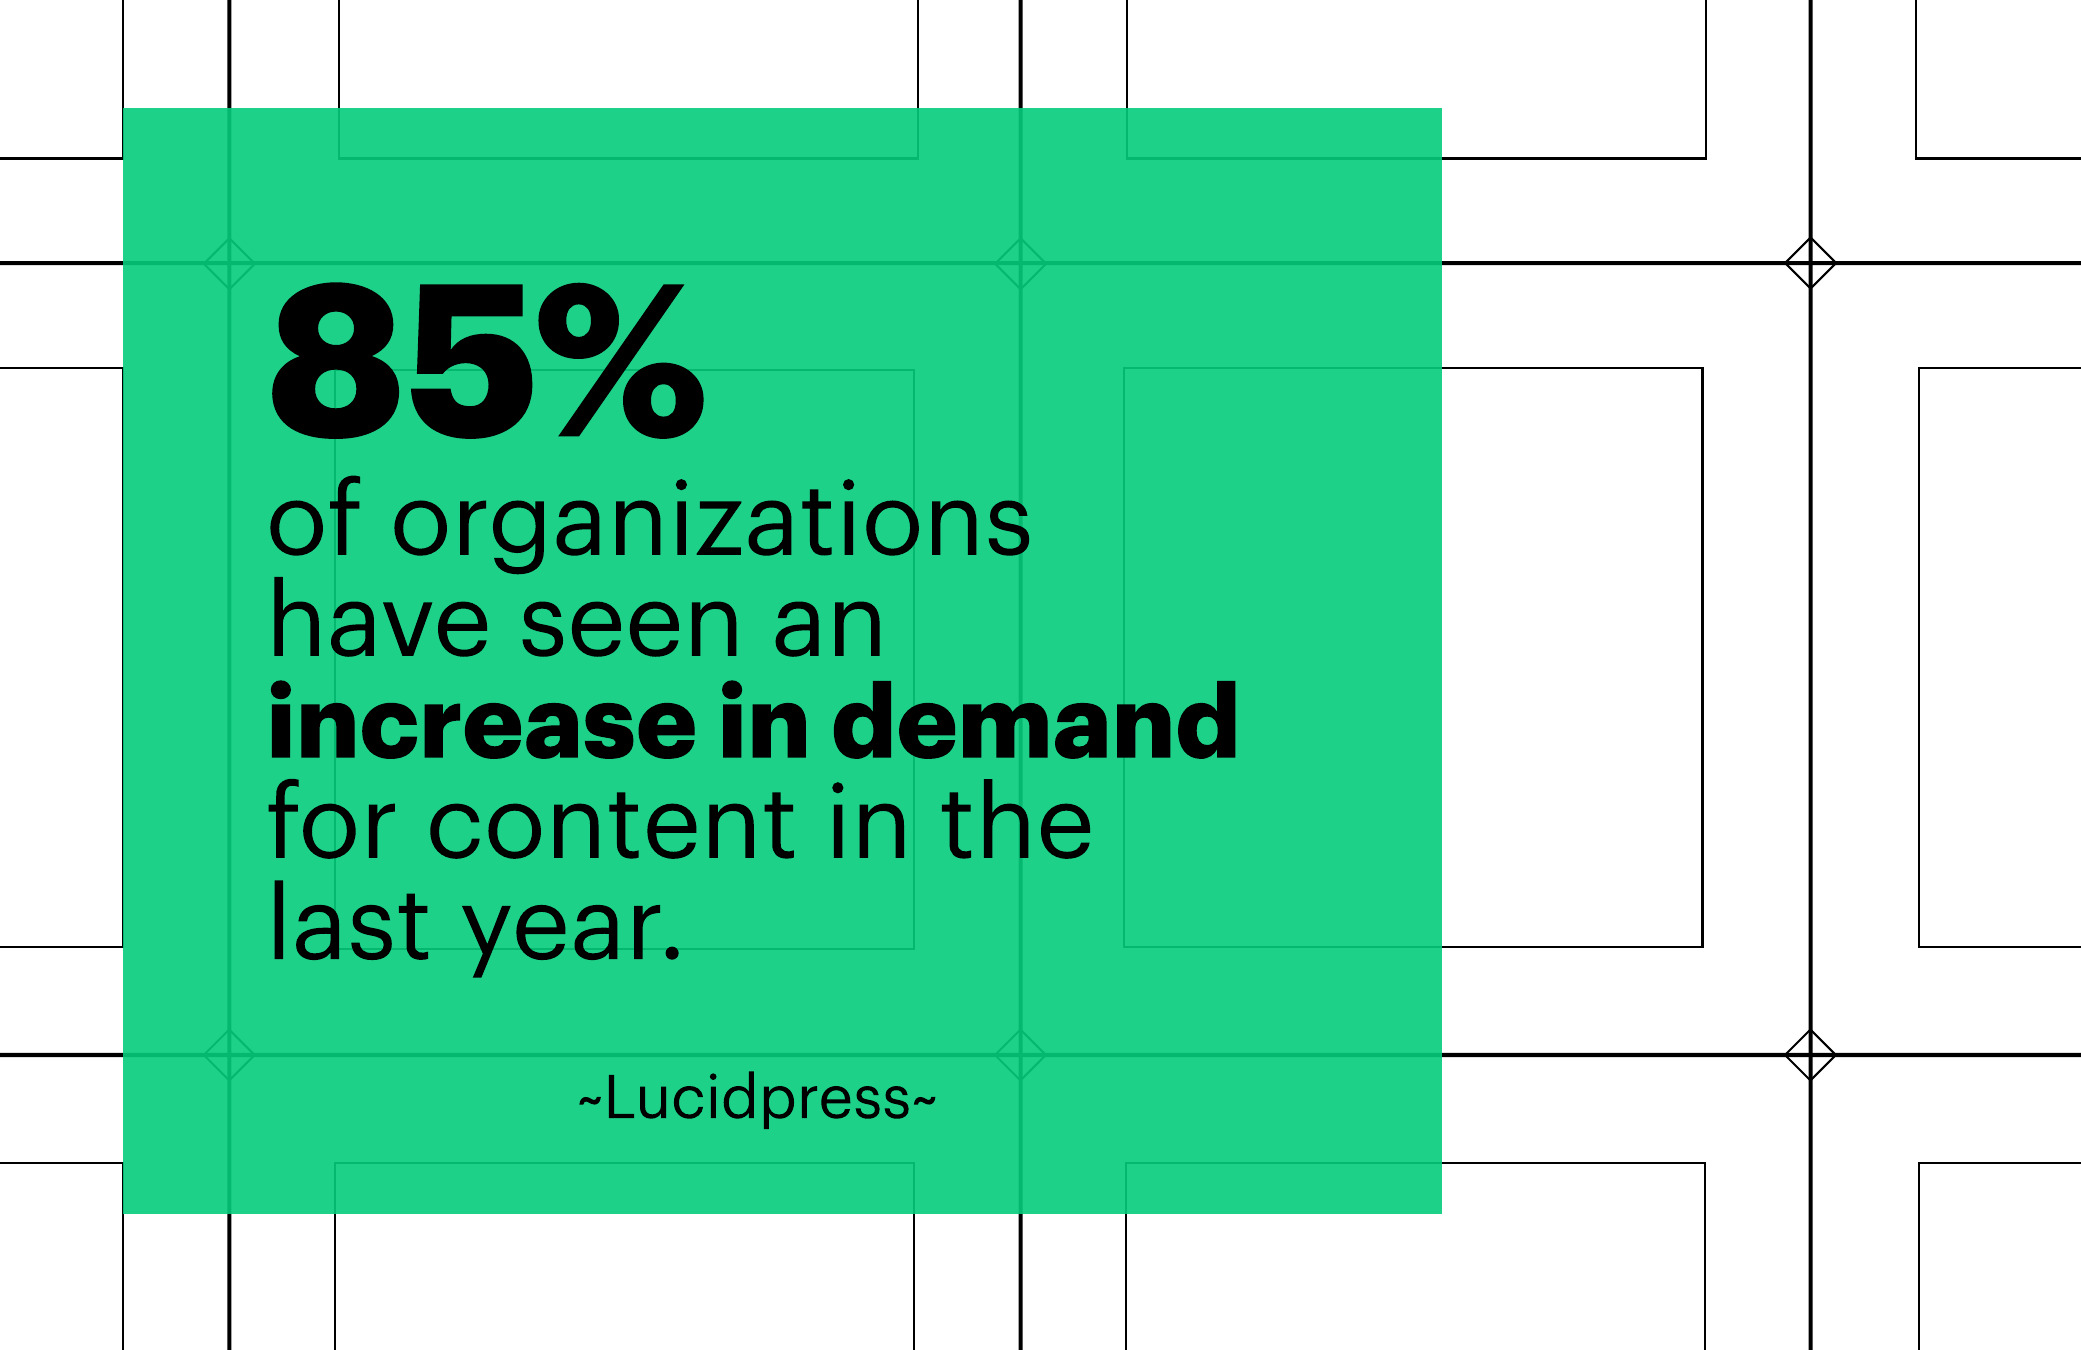 85% of organizations have seen an increase in demand for content in the last year